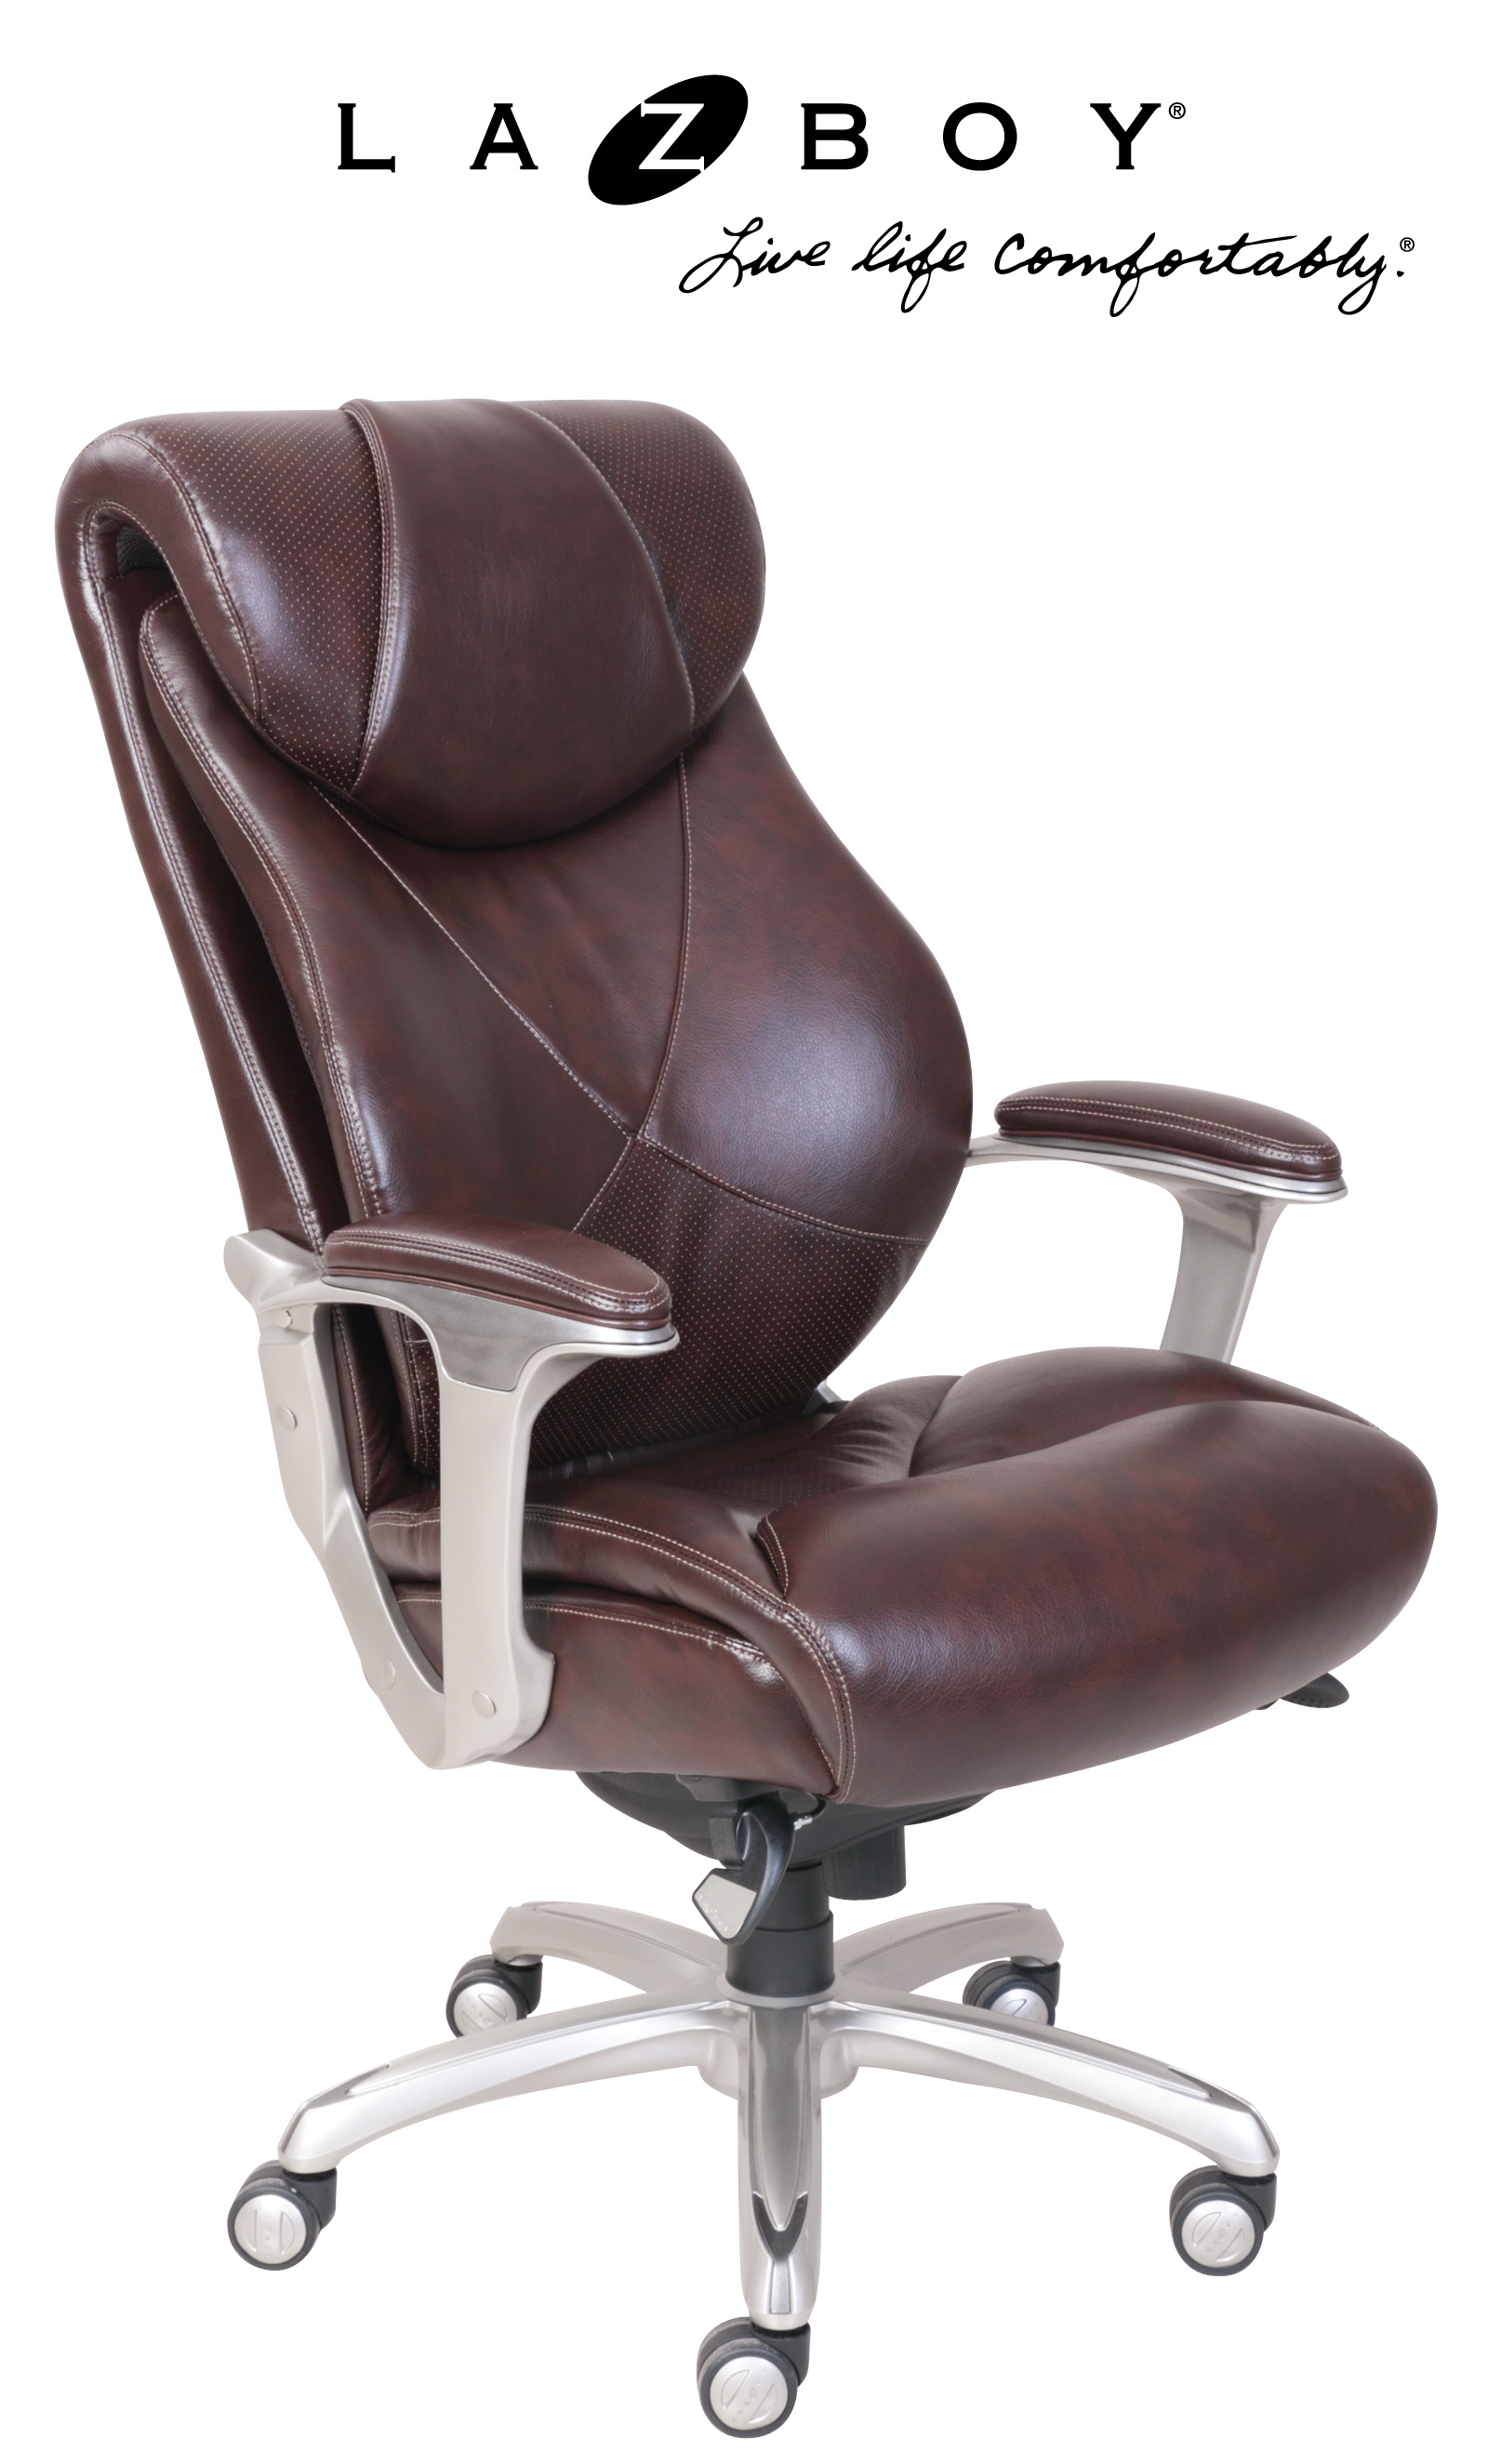 la z boy big tall executive leather office chair black wheelchair in hindi desk chairs sears cantania bonded coffee